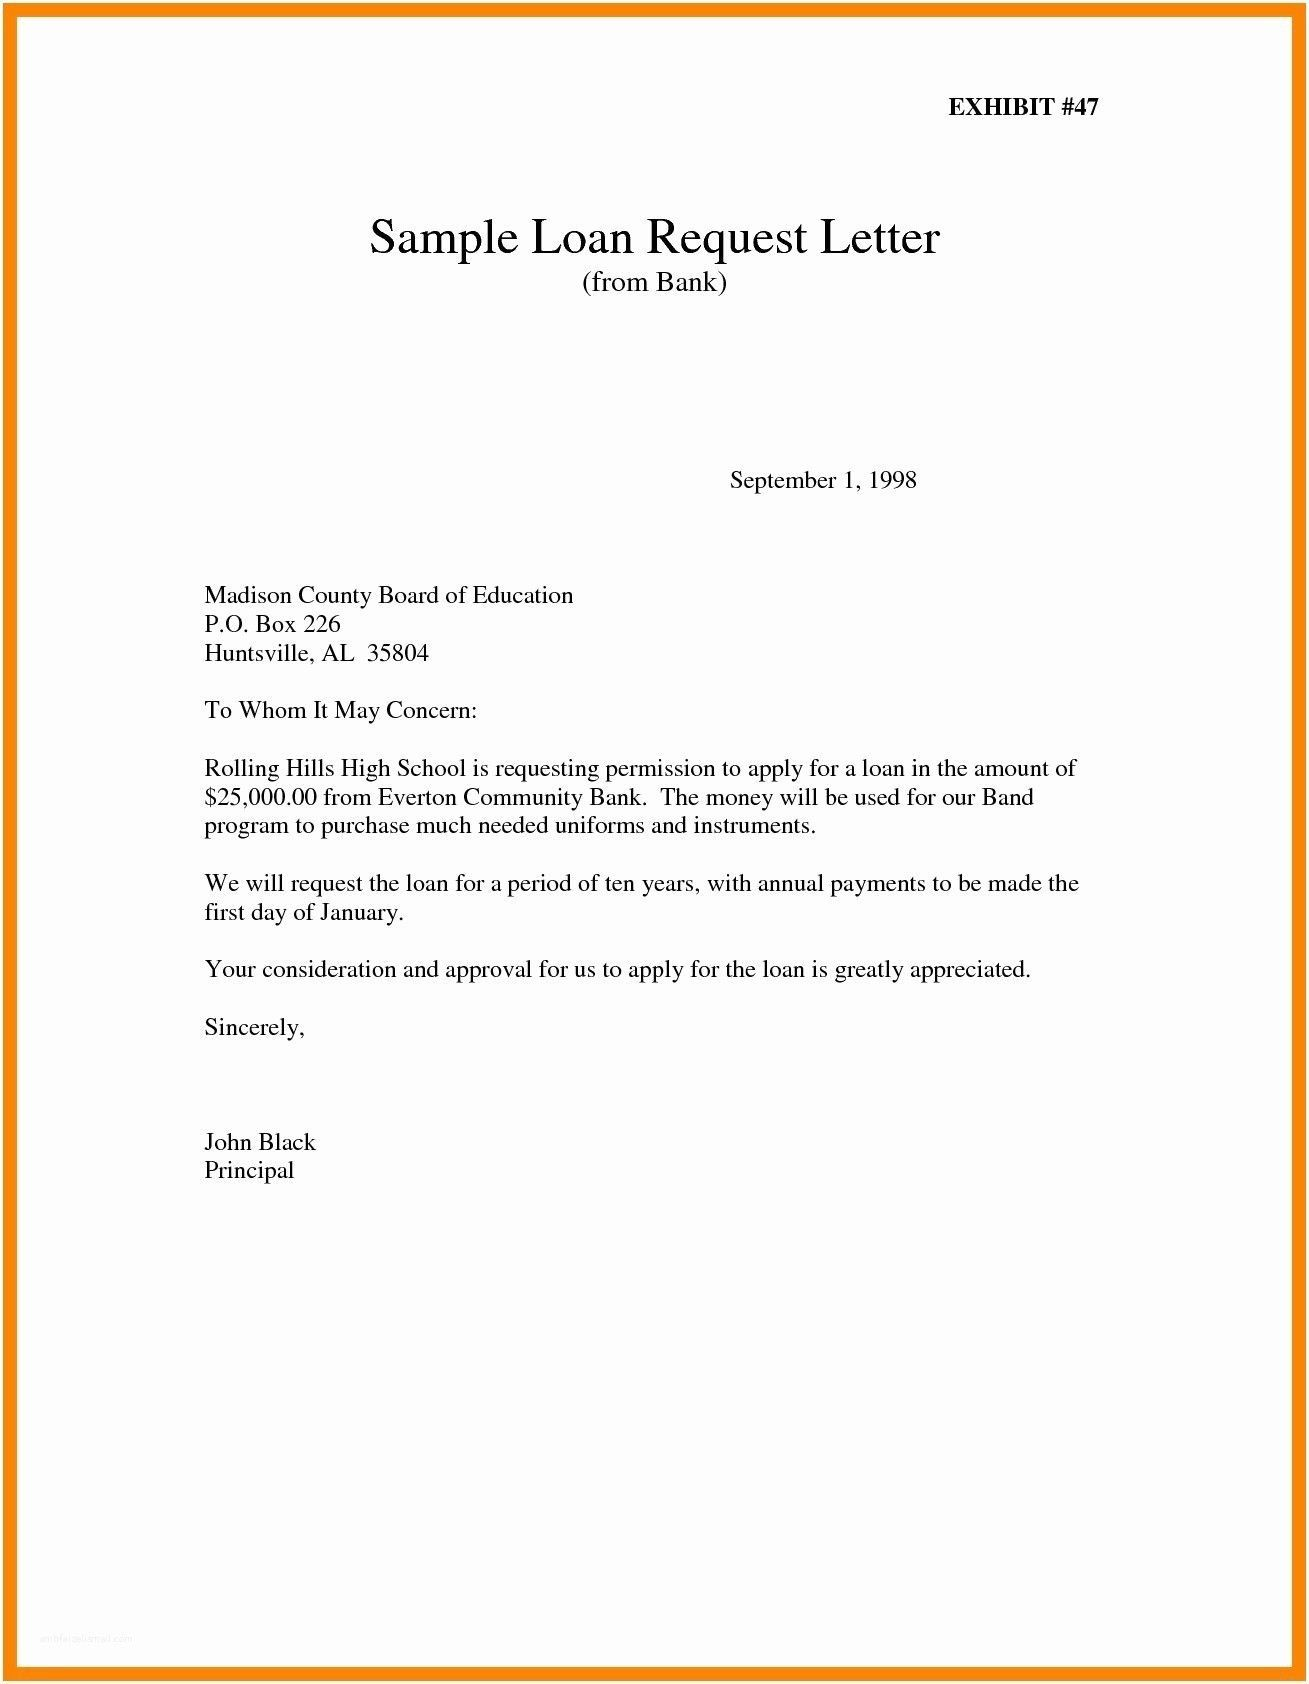 How To Write Authorization Letter To Bank - arxiusarquitectura